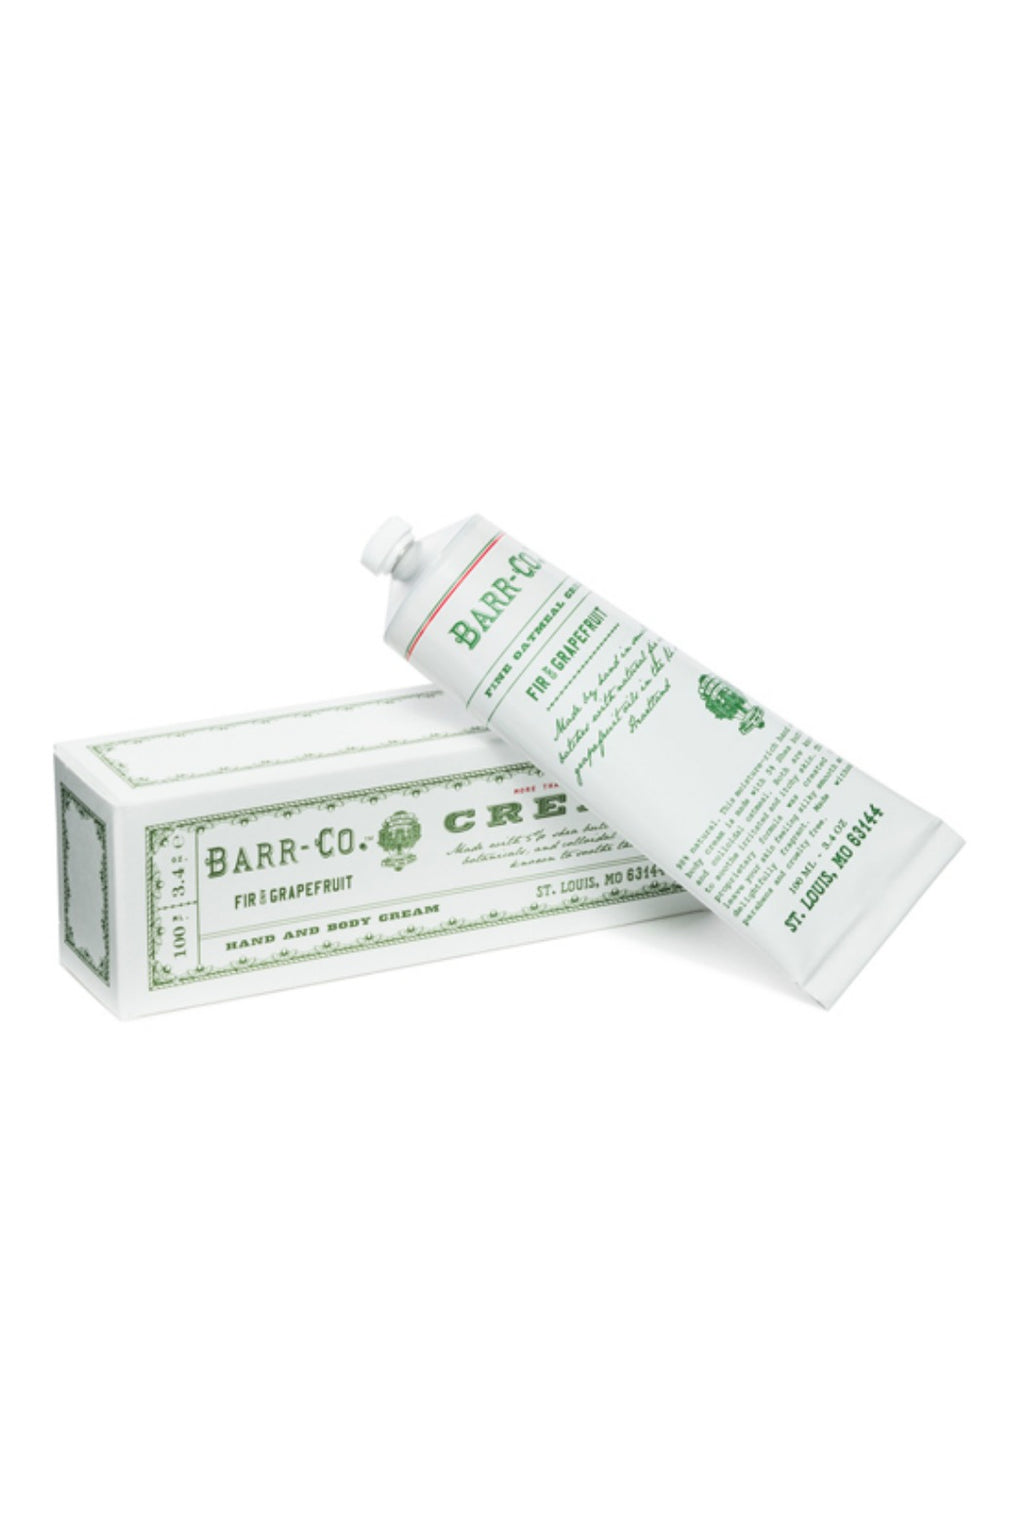 Barr-Co. Hand & Body Cream 3.4 oz. - Fir & Grapefruit